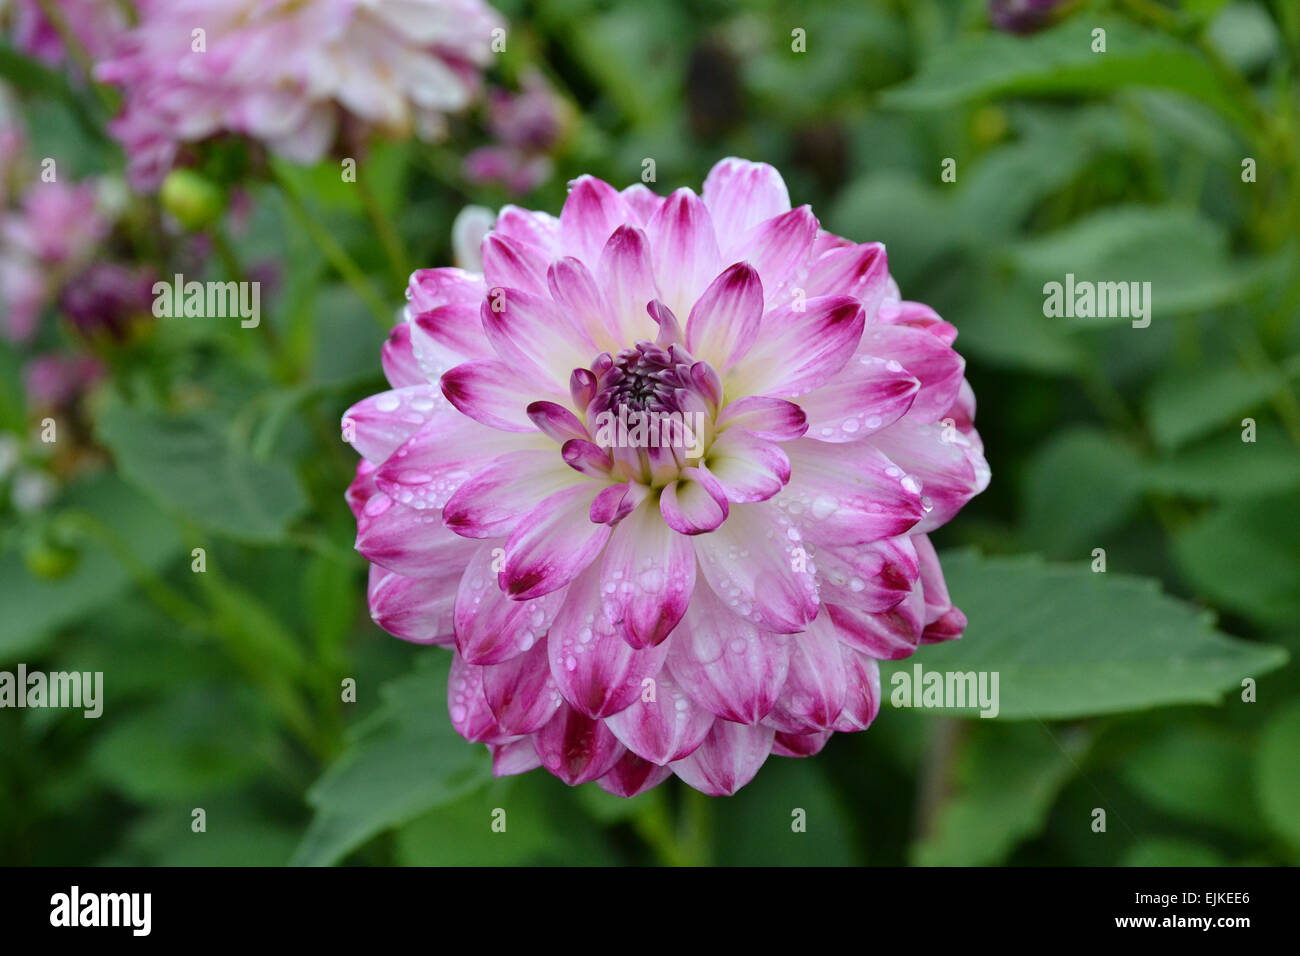 Dahlia Royal Visit - Stock Image